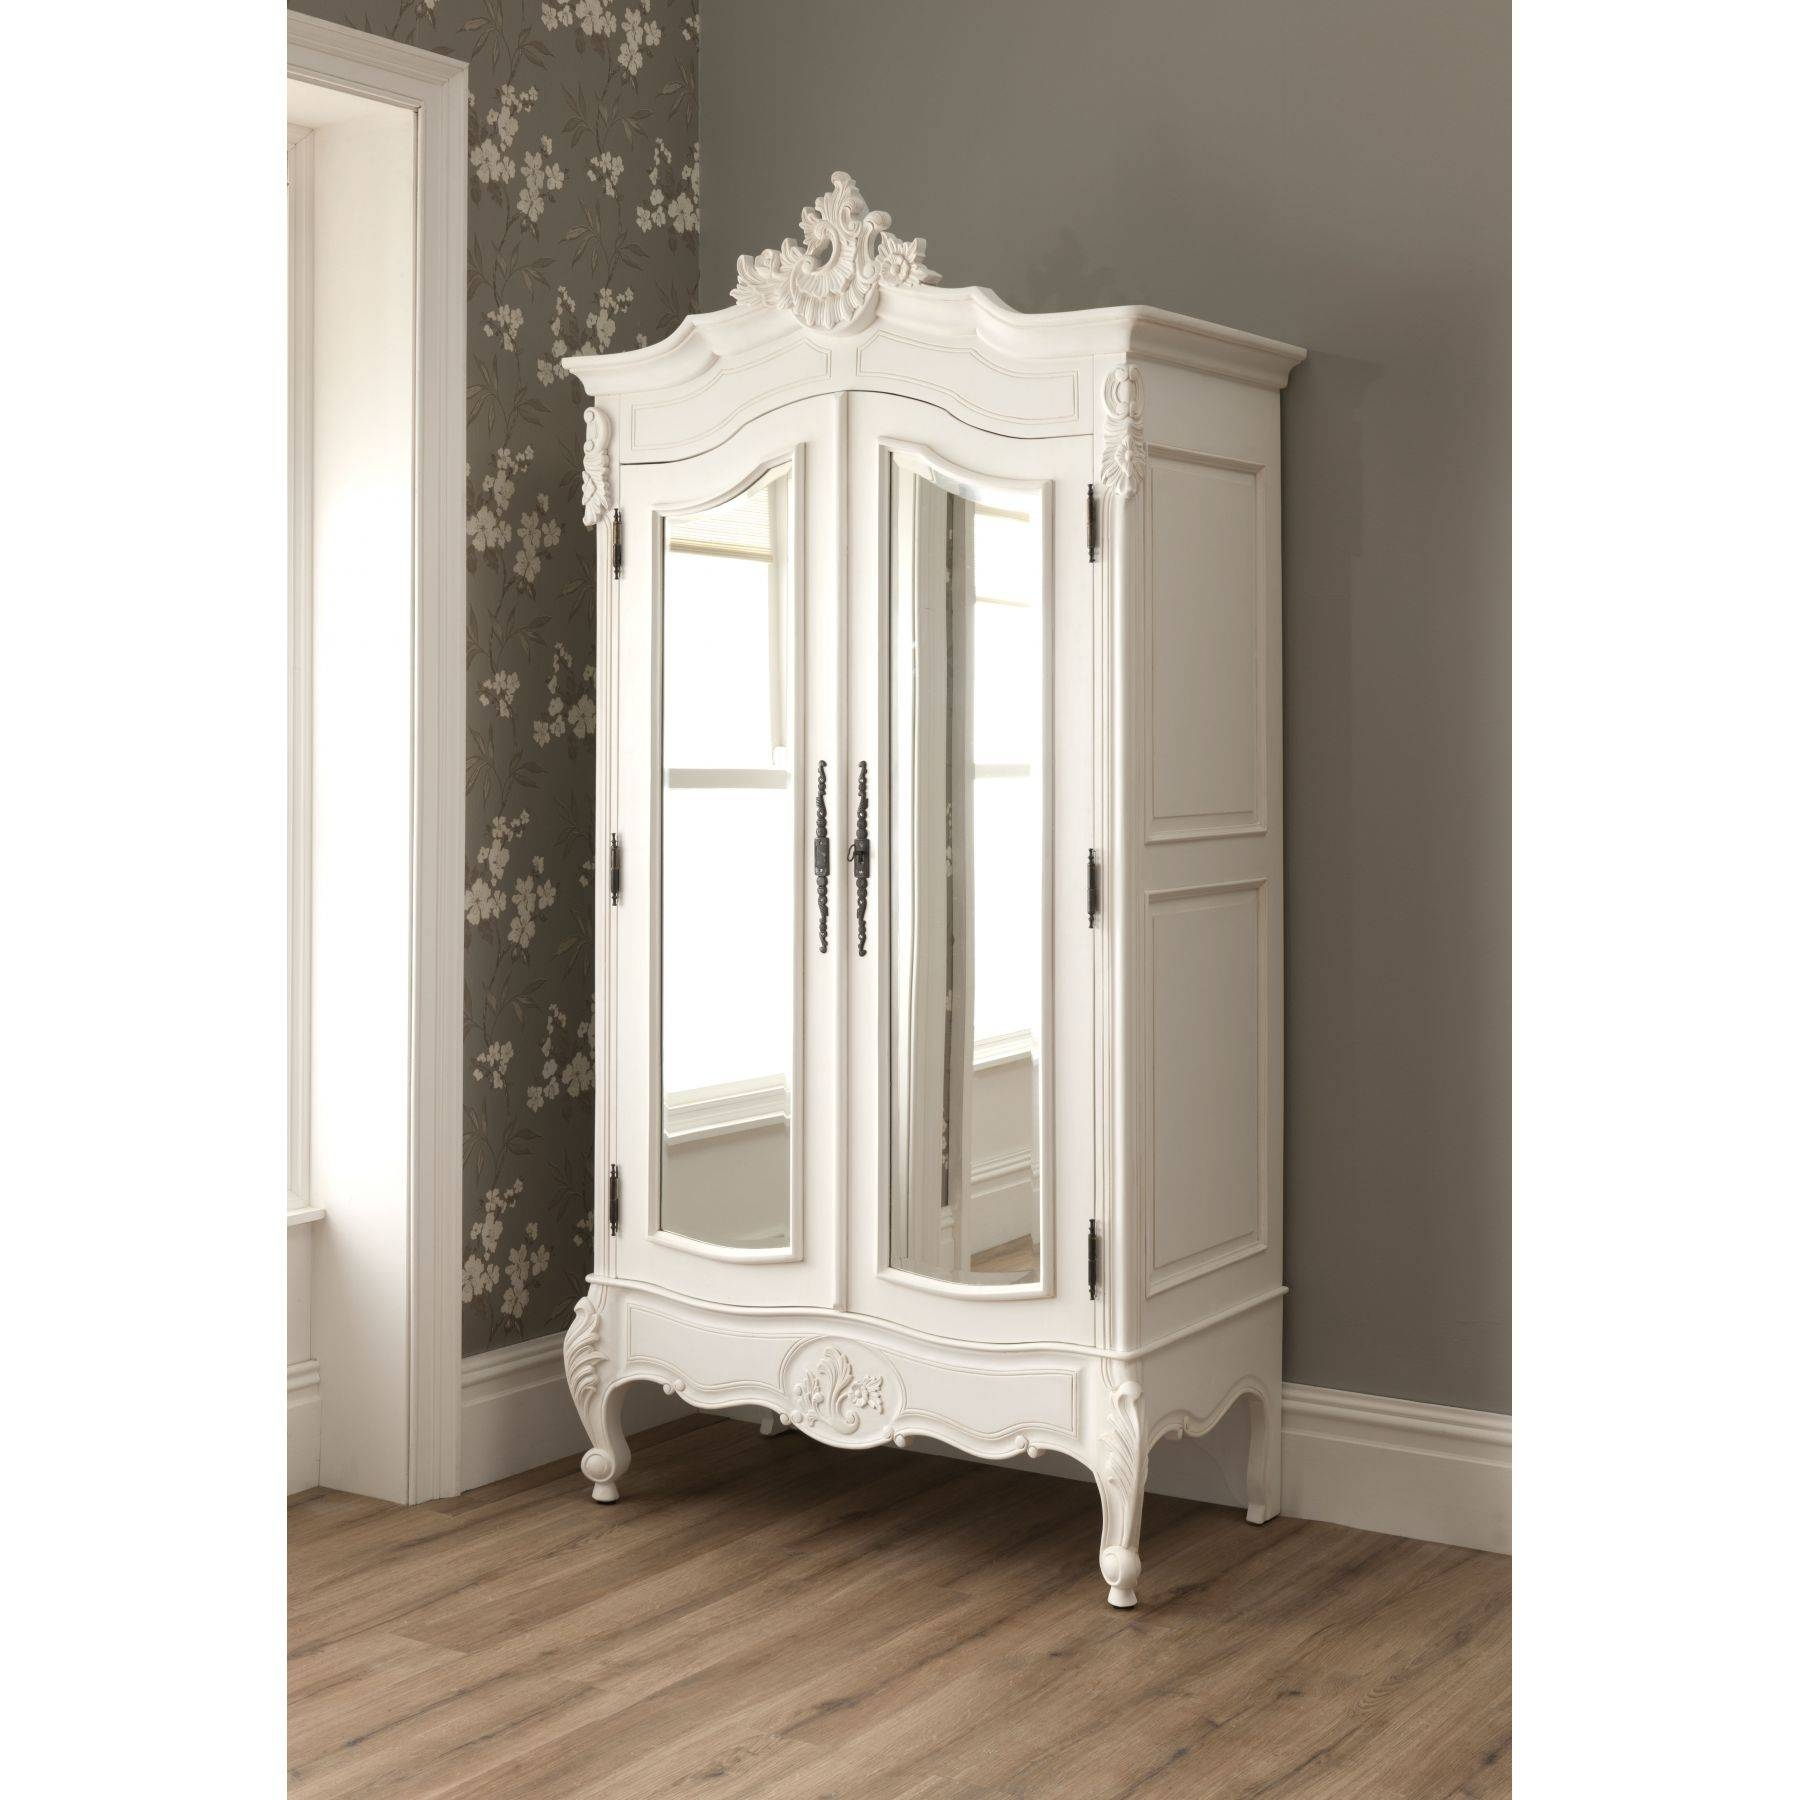 Furniture: Exciting Armoire Wardrobe For Interior Storage Design pertaining to French Armoire Wardrobes (Image 8 of 15)